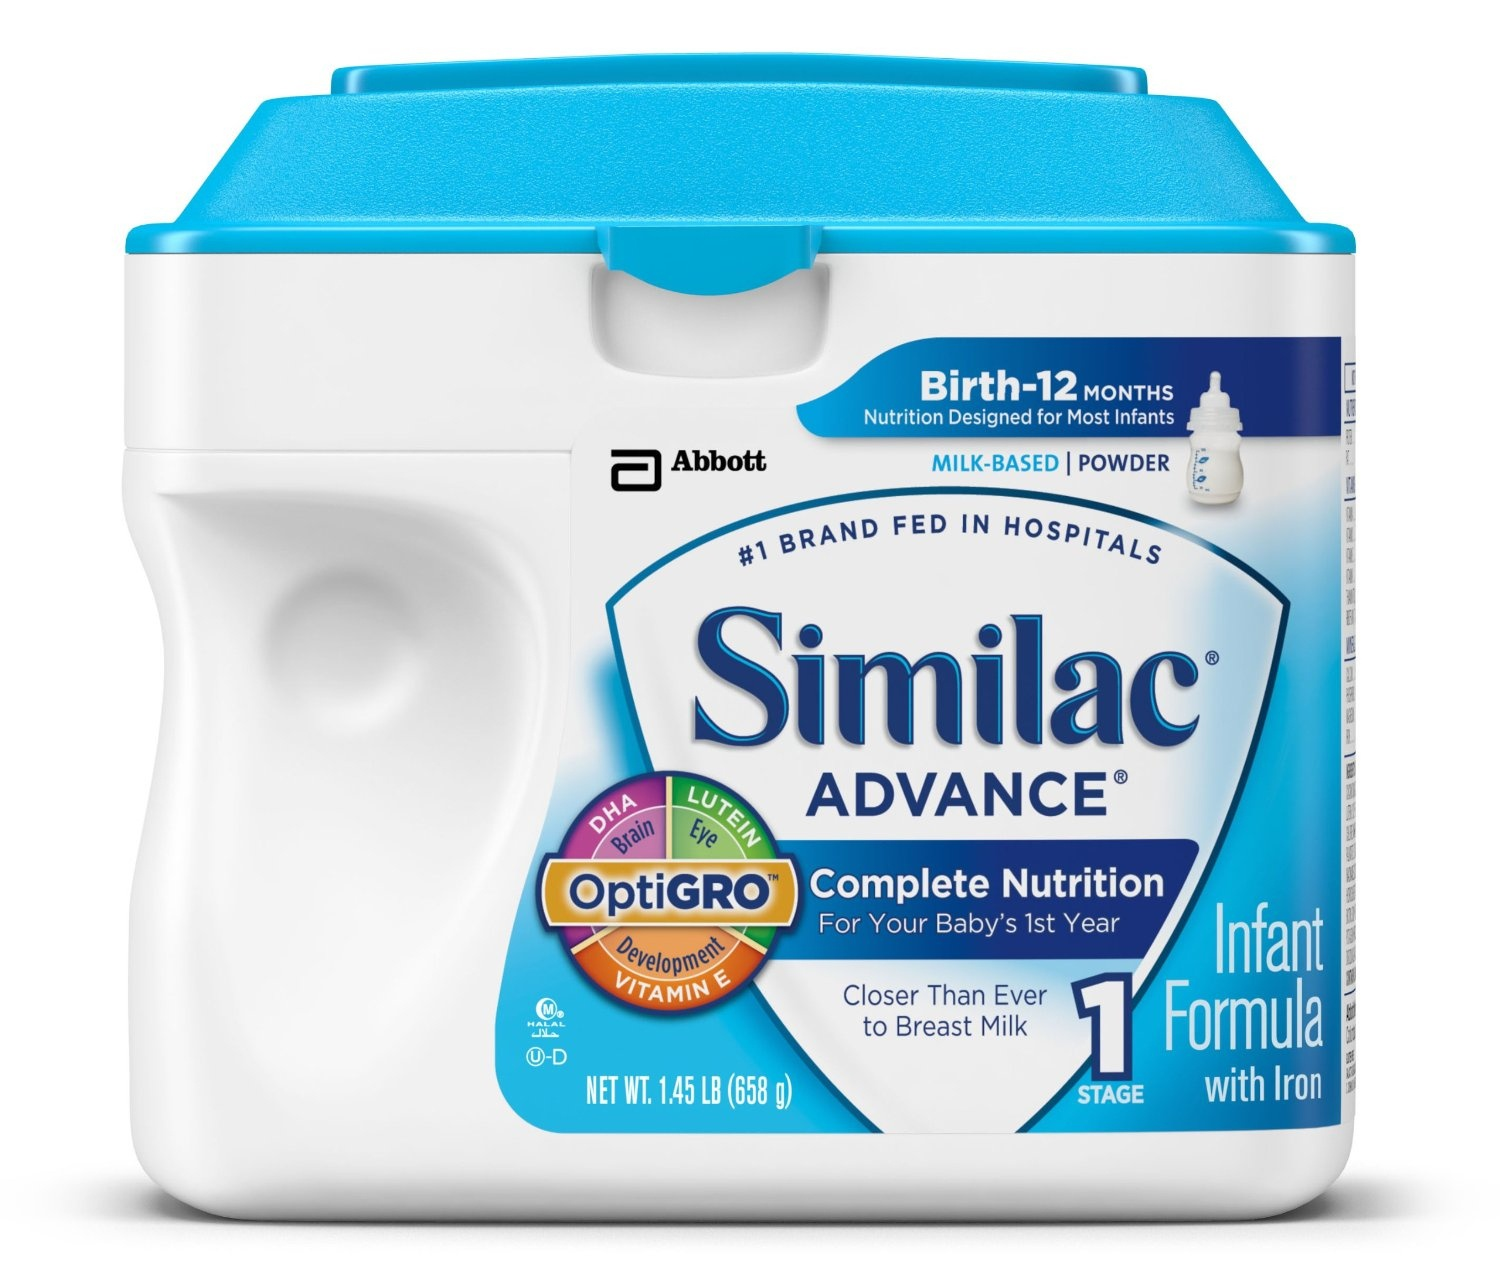 How To Get Coupons For Similac Baby Formula / Wcco Dining Out Deals - Free Printable Similac Coupons 2018